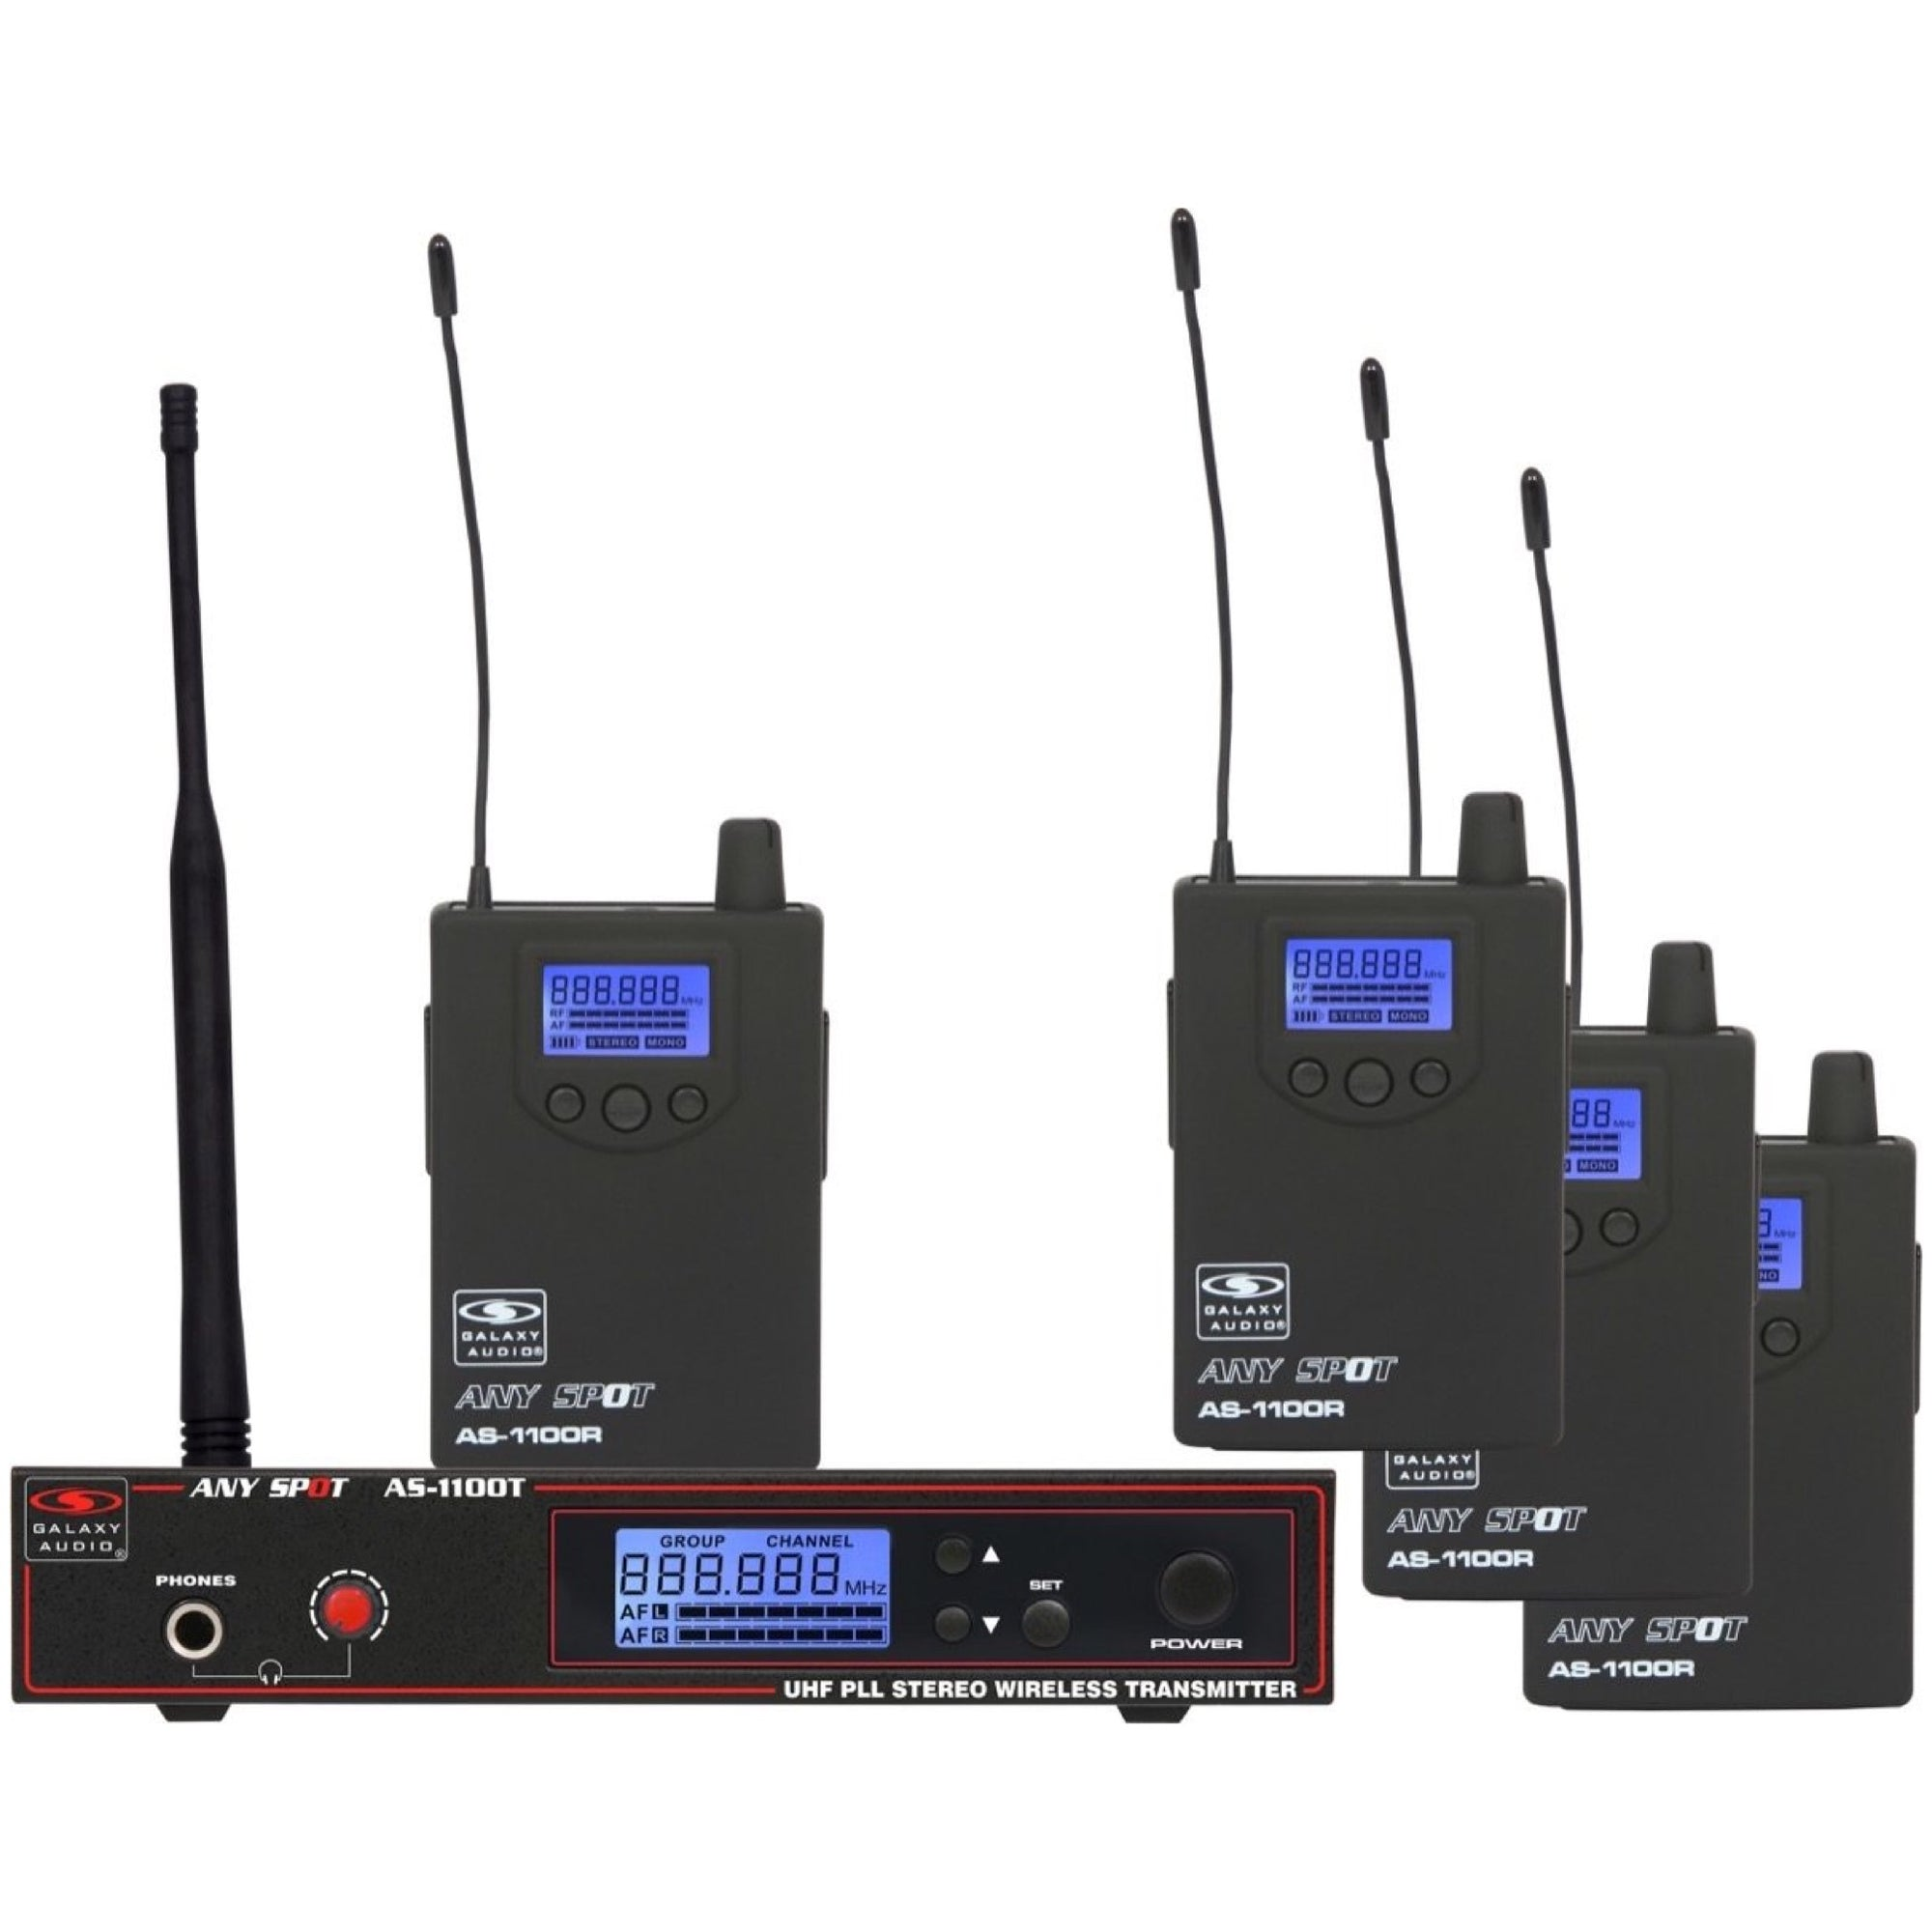 Galaxy Audio AS-1100-4 Selectable-Frequency Wireless In-Ear Monitor Band Pack, Band N (518-542 MHz)